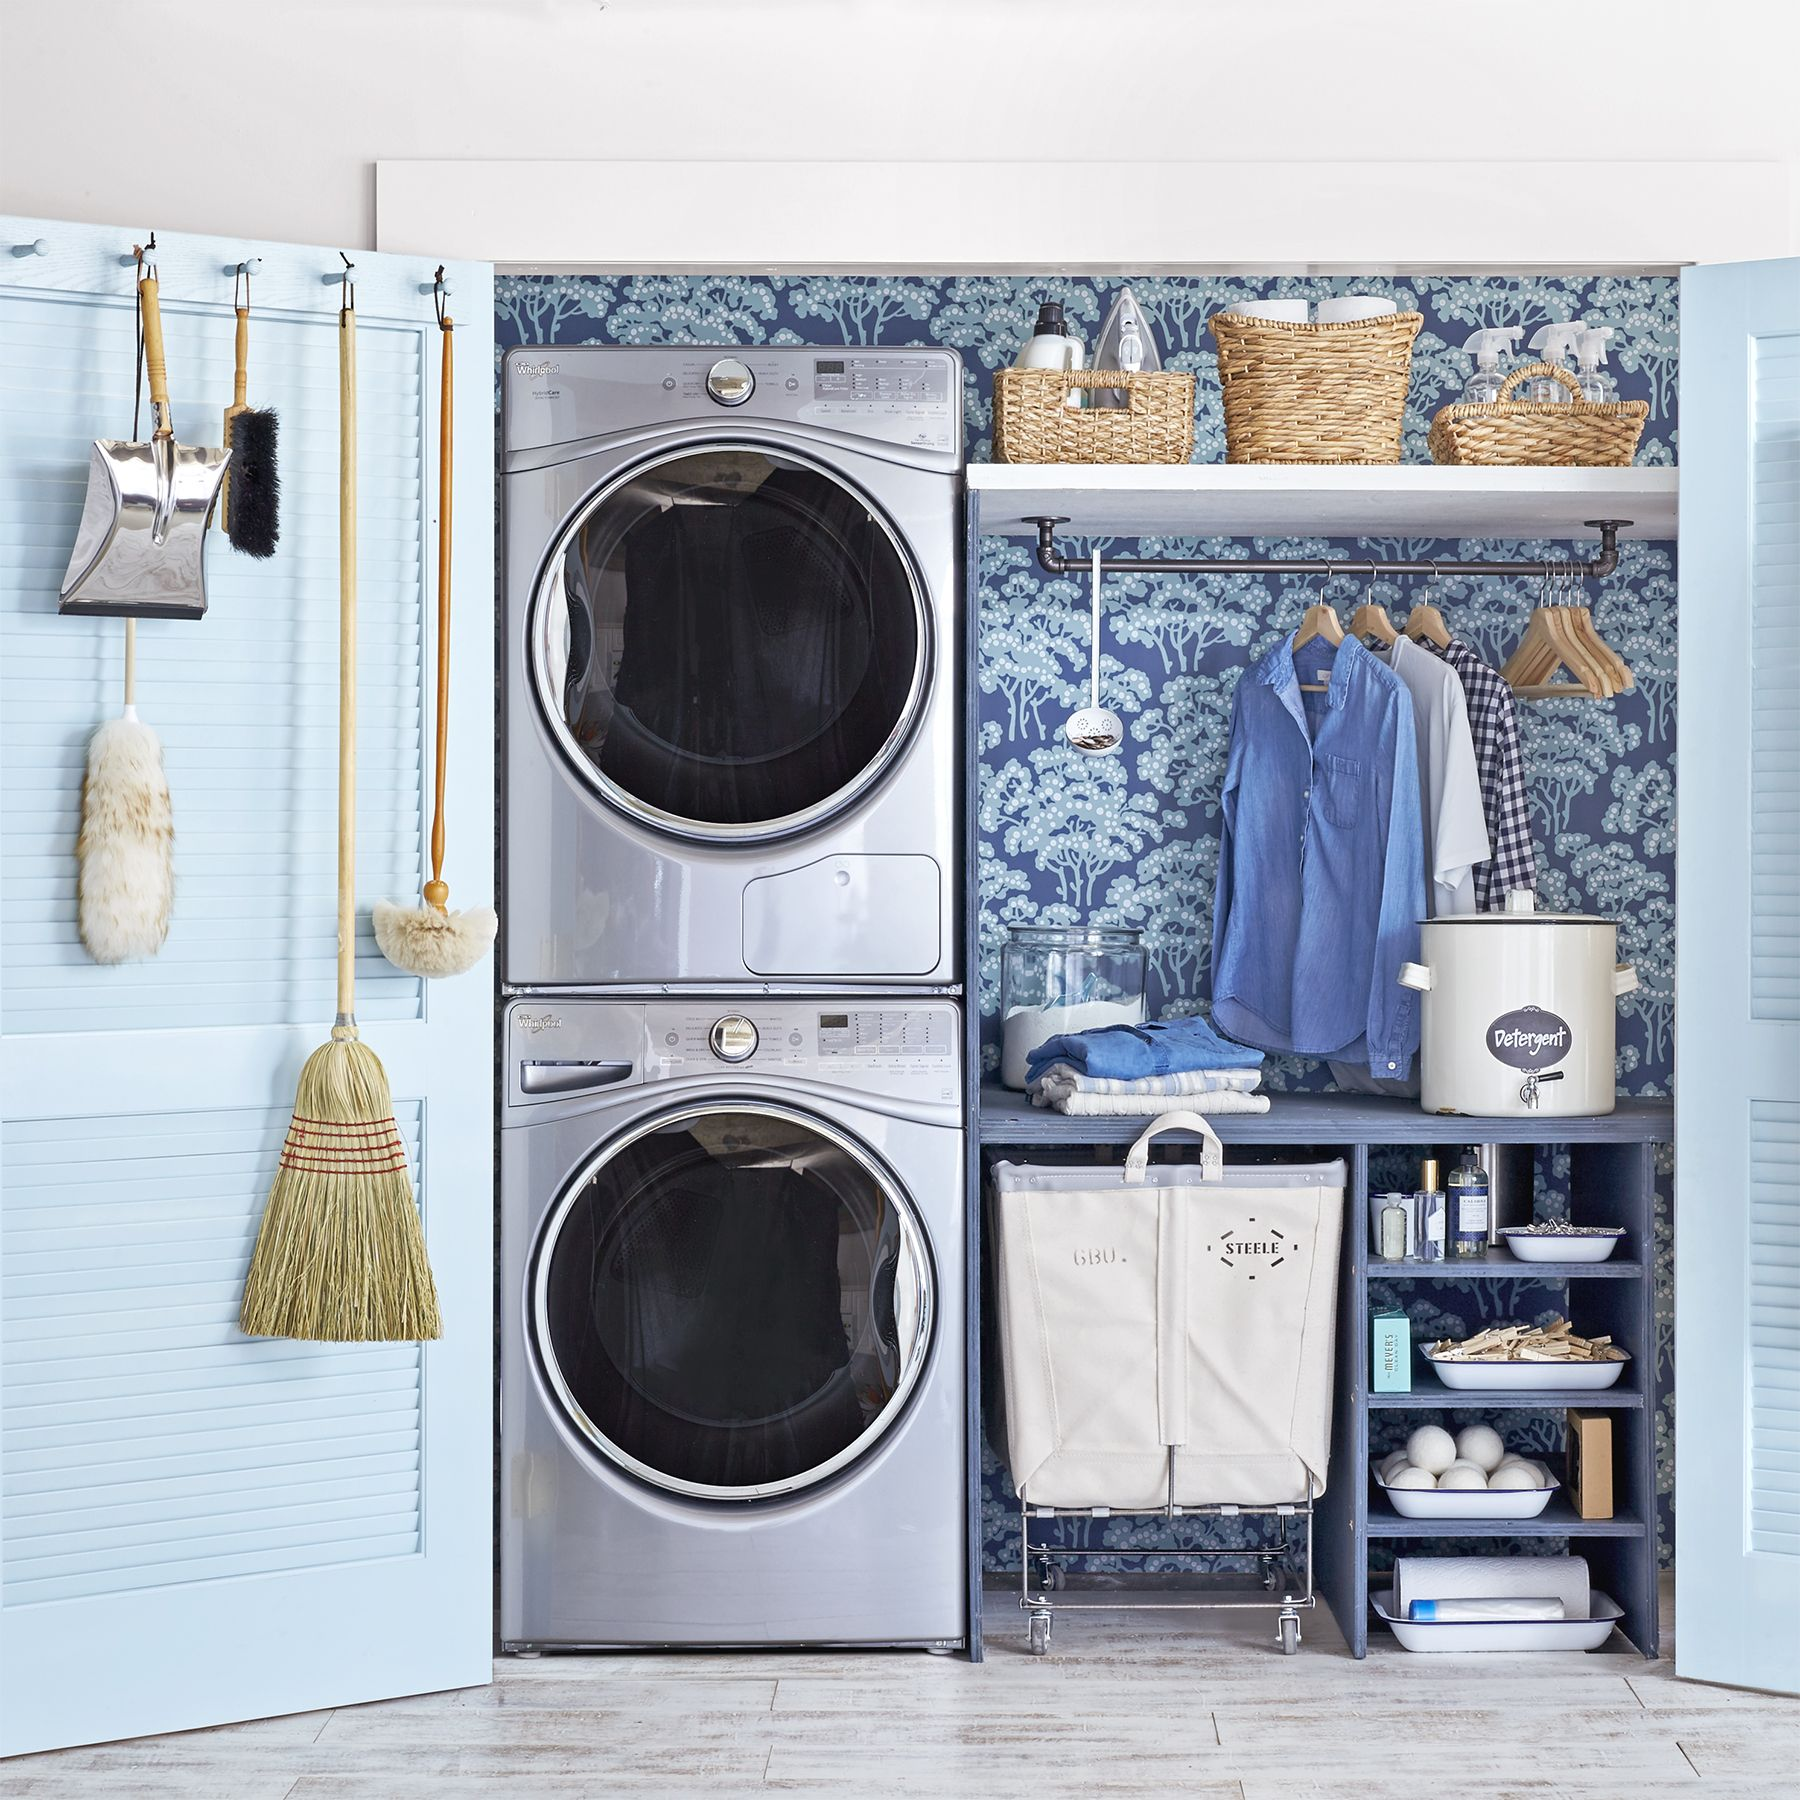 How To Clean Your Washing Machine Cleaning The Inside Of Front Or Top Loading Washing Machine